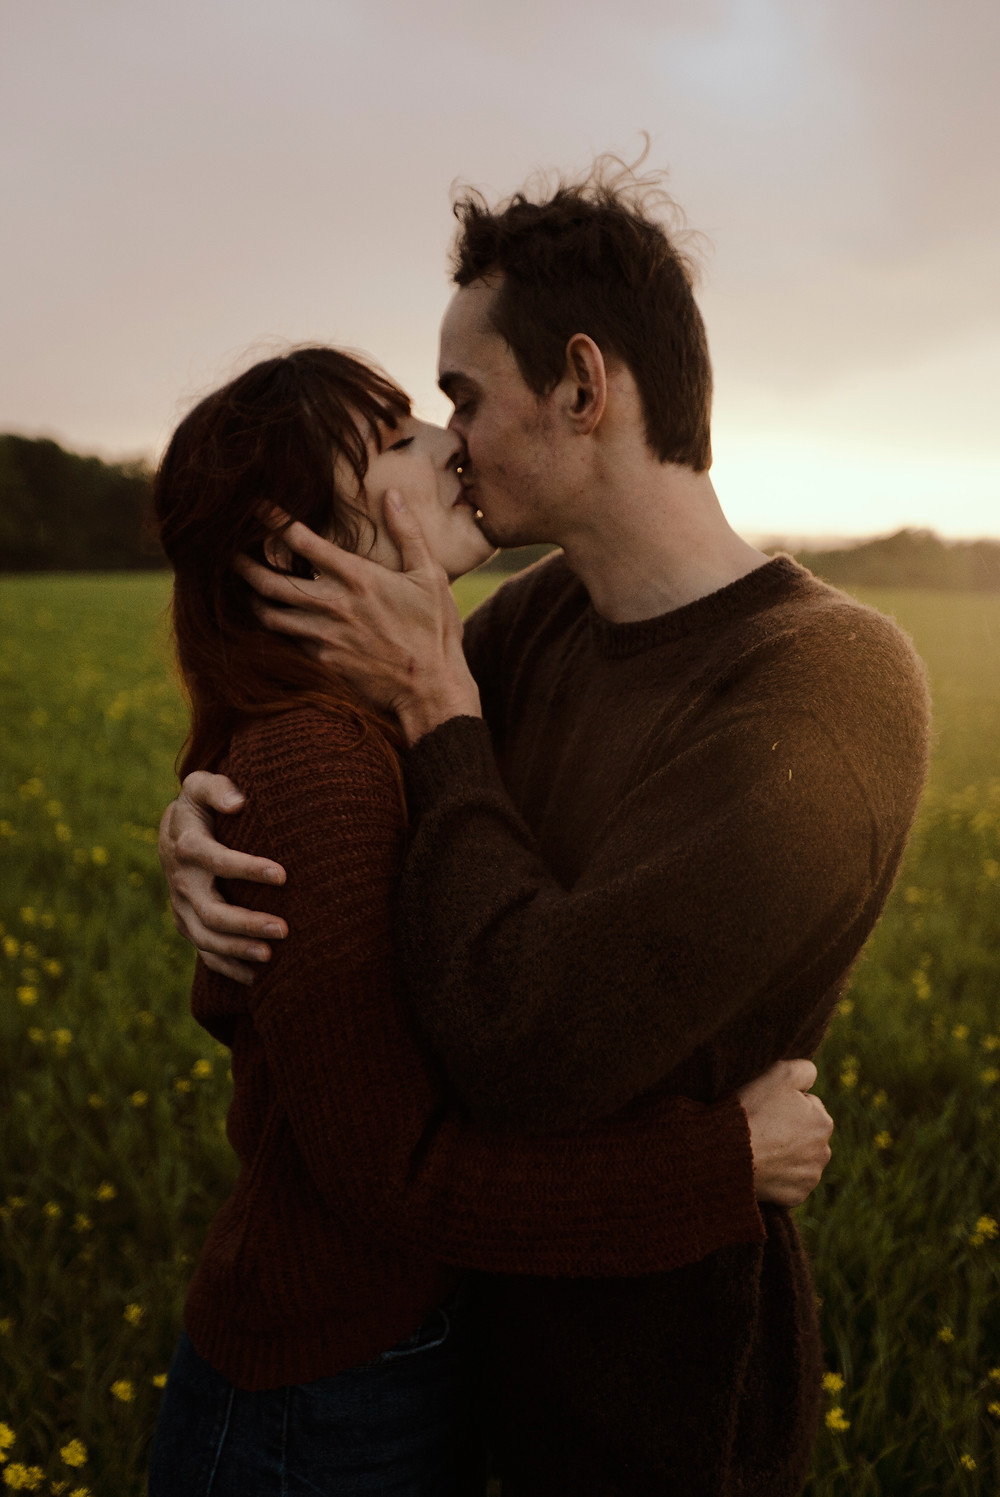 a couple is kissing at sunset on a field in the rain